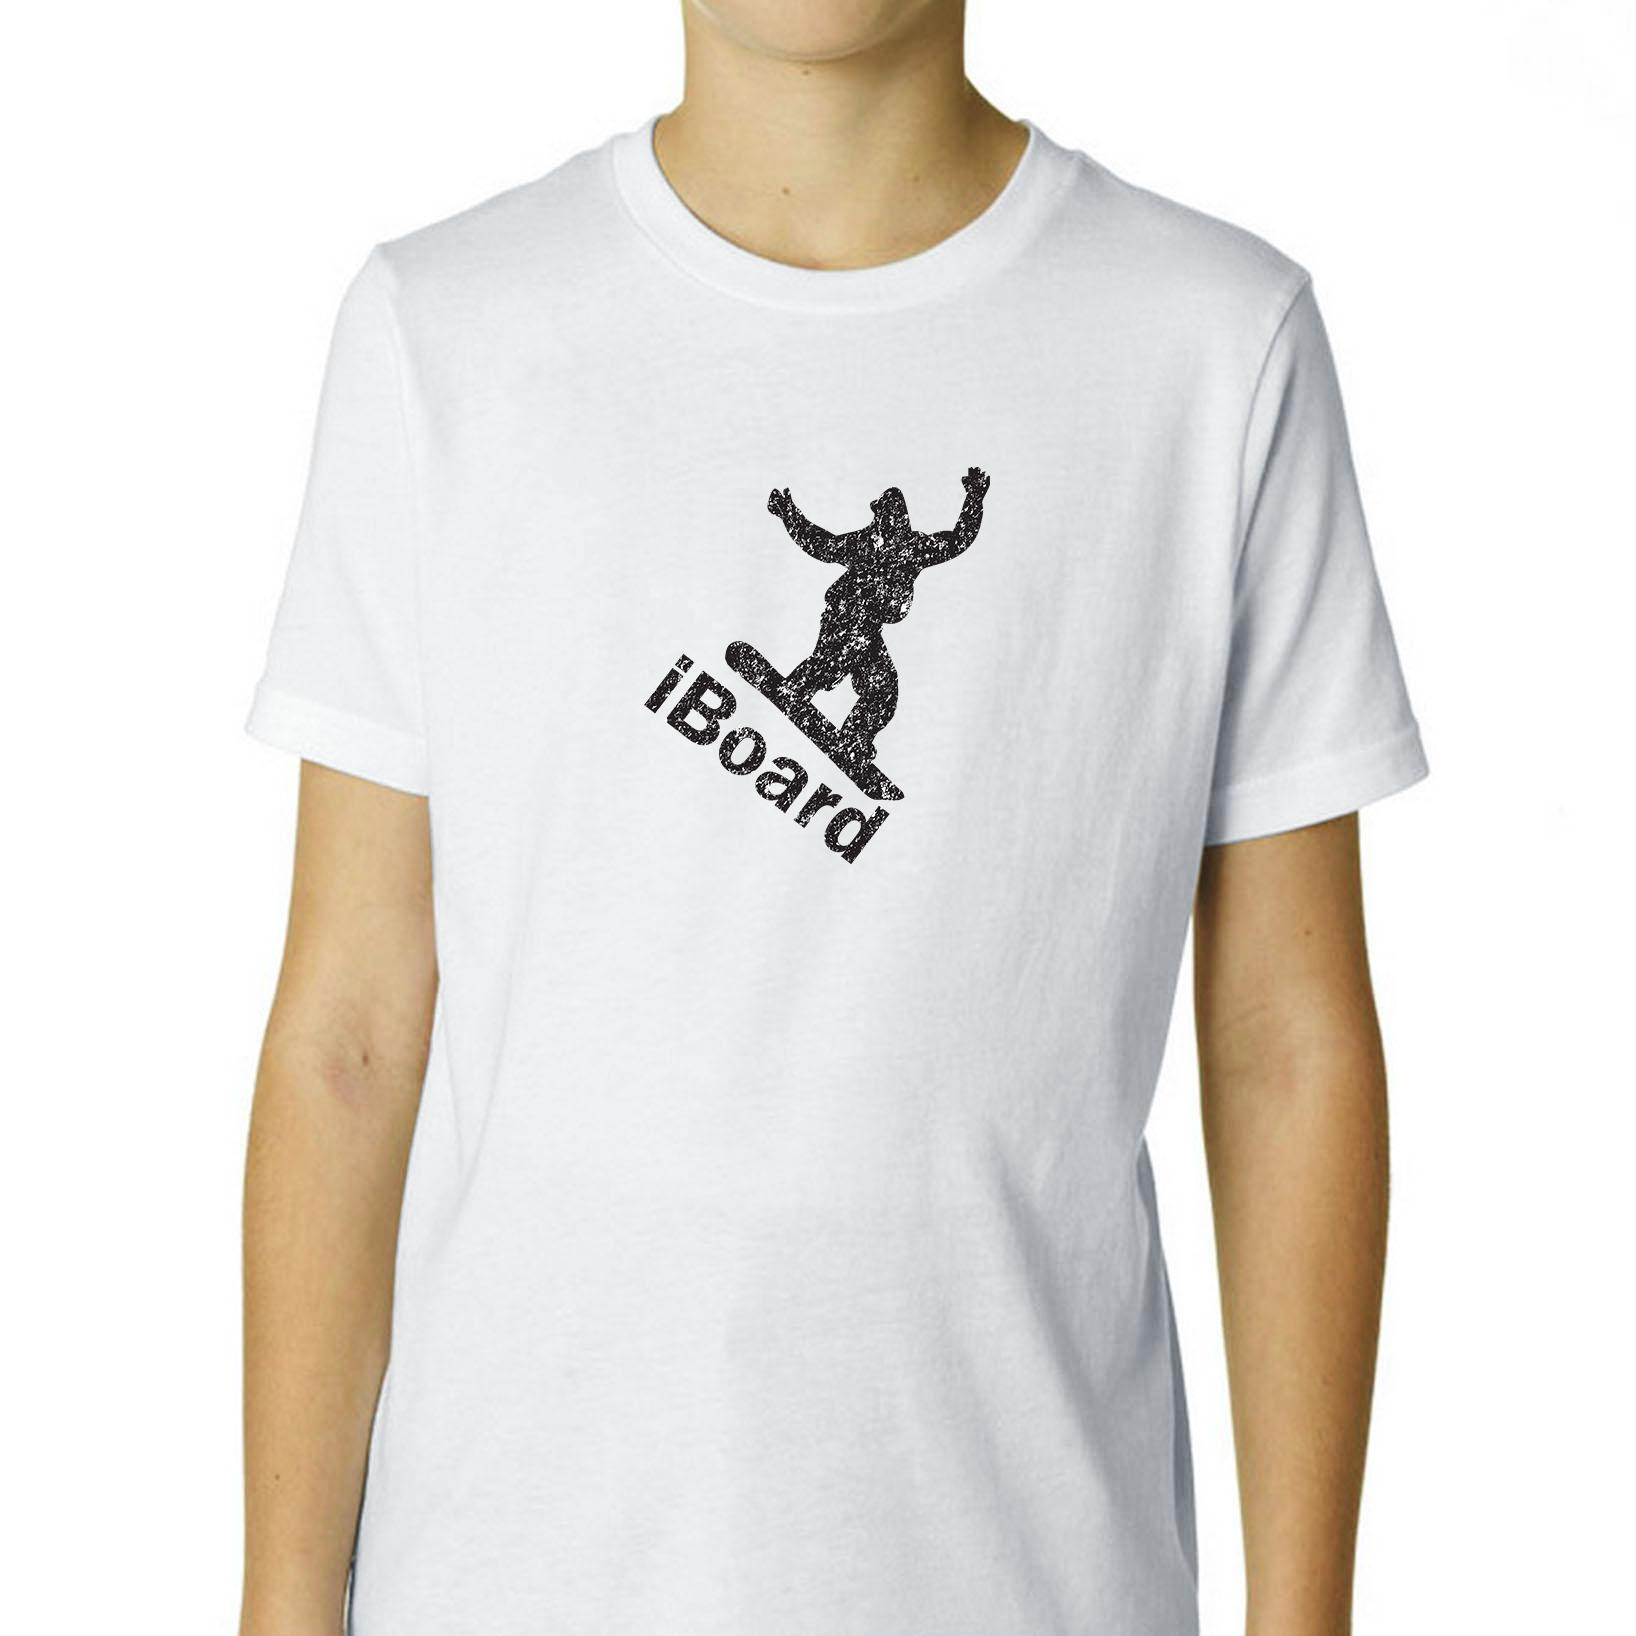 iBoard Snowboarding Very Cool Silhouette Boy's Cotton Youth T-Shirt by Hollywood Thread